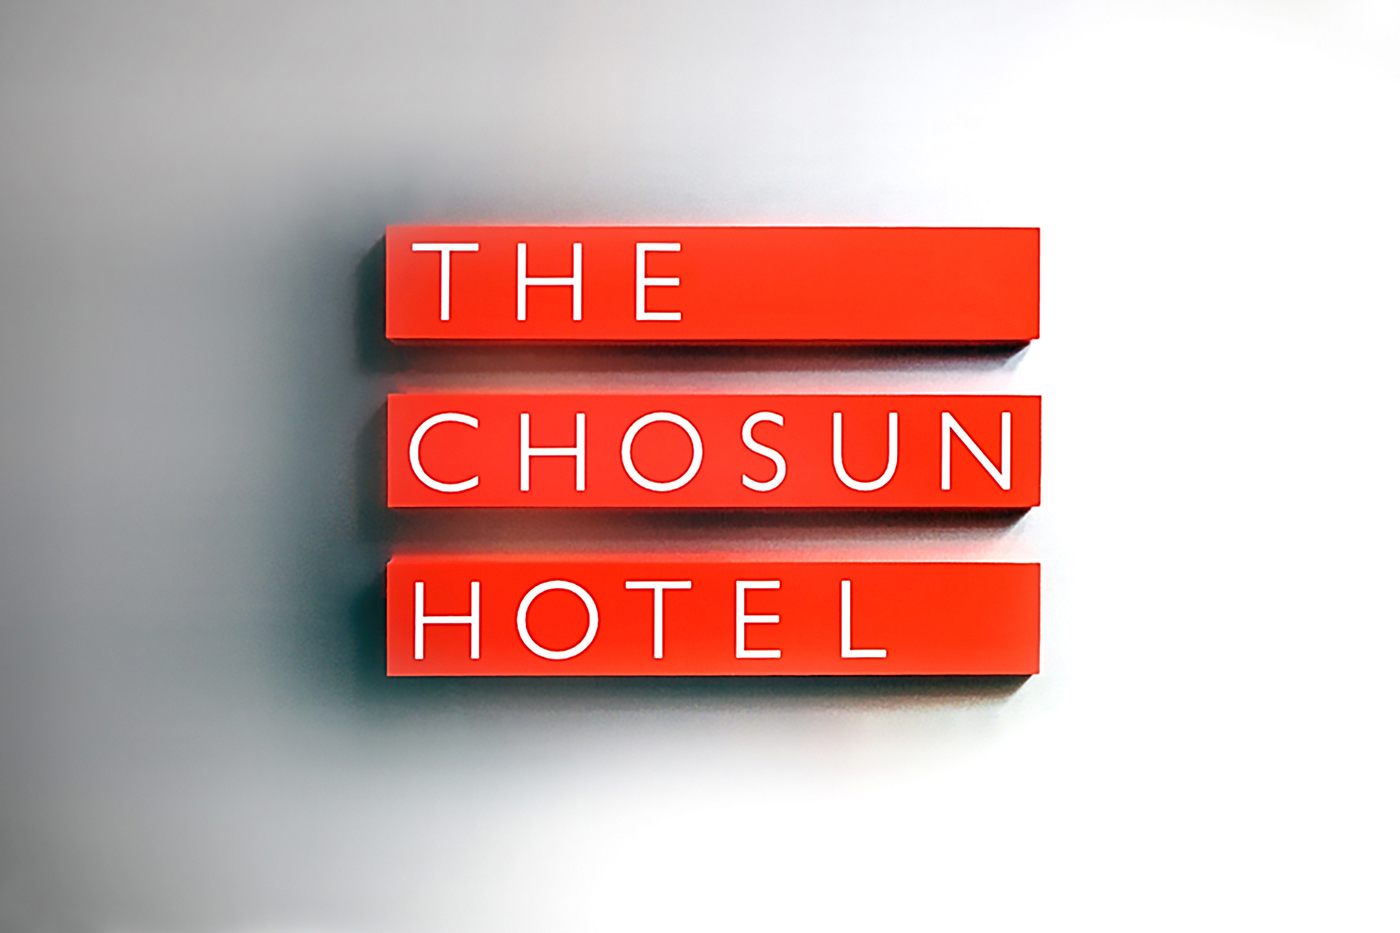 The Chosun Hotel, Korea